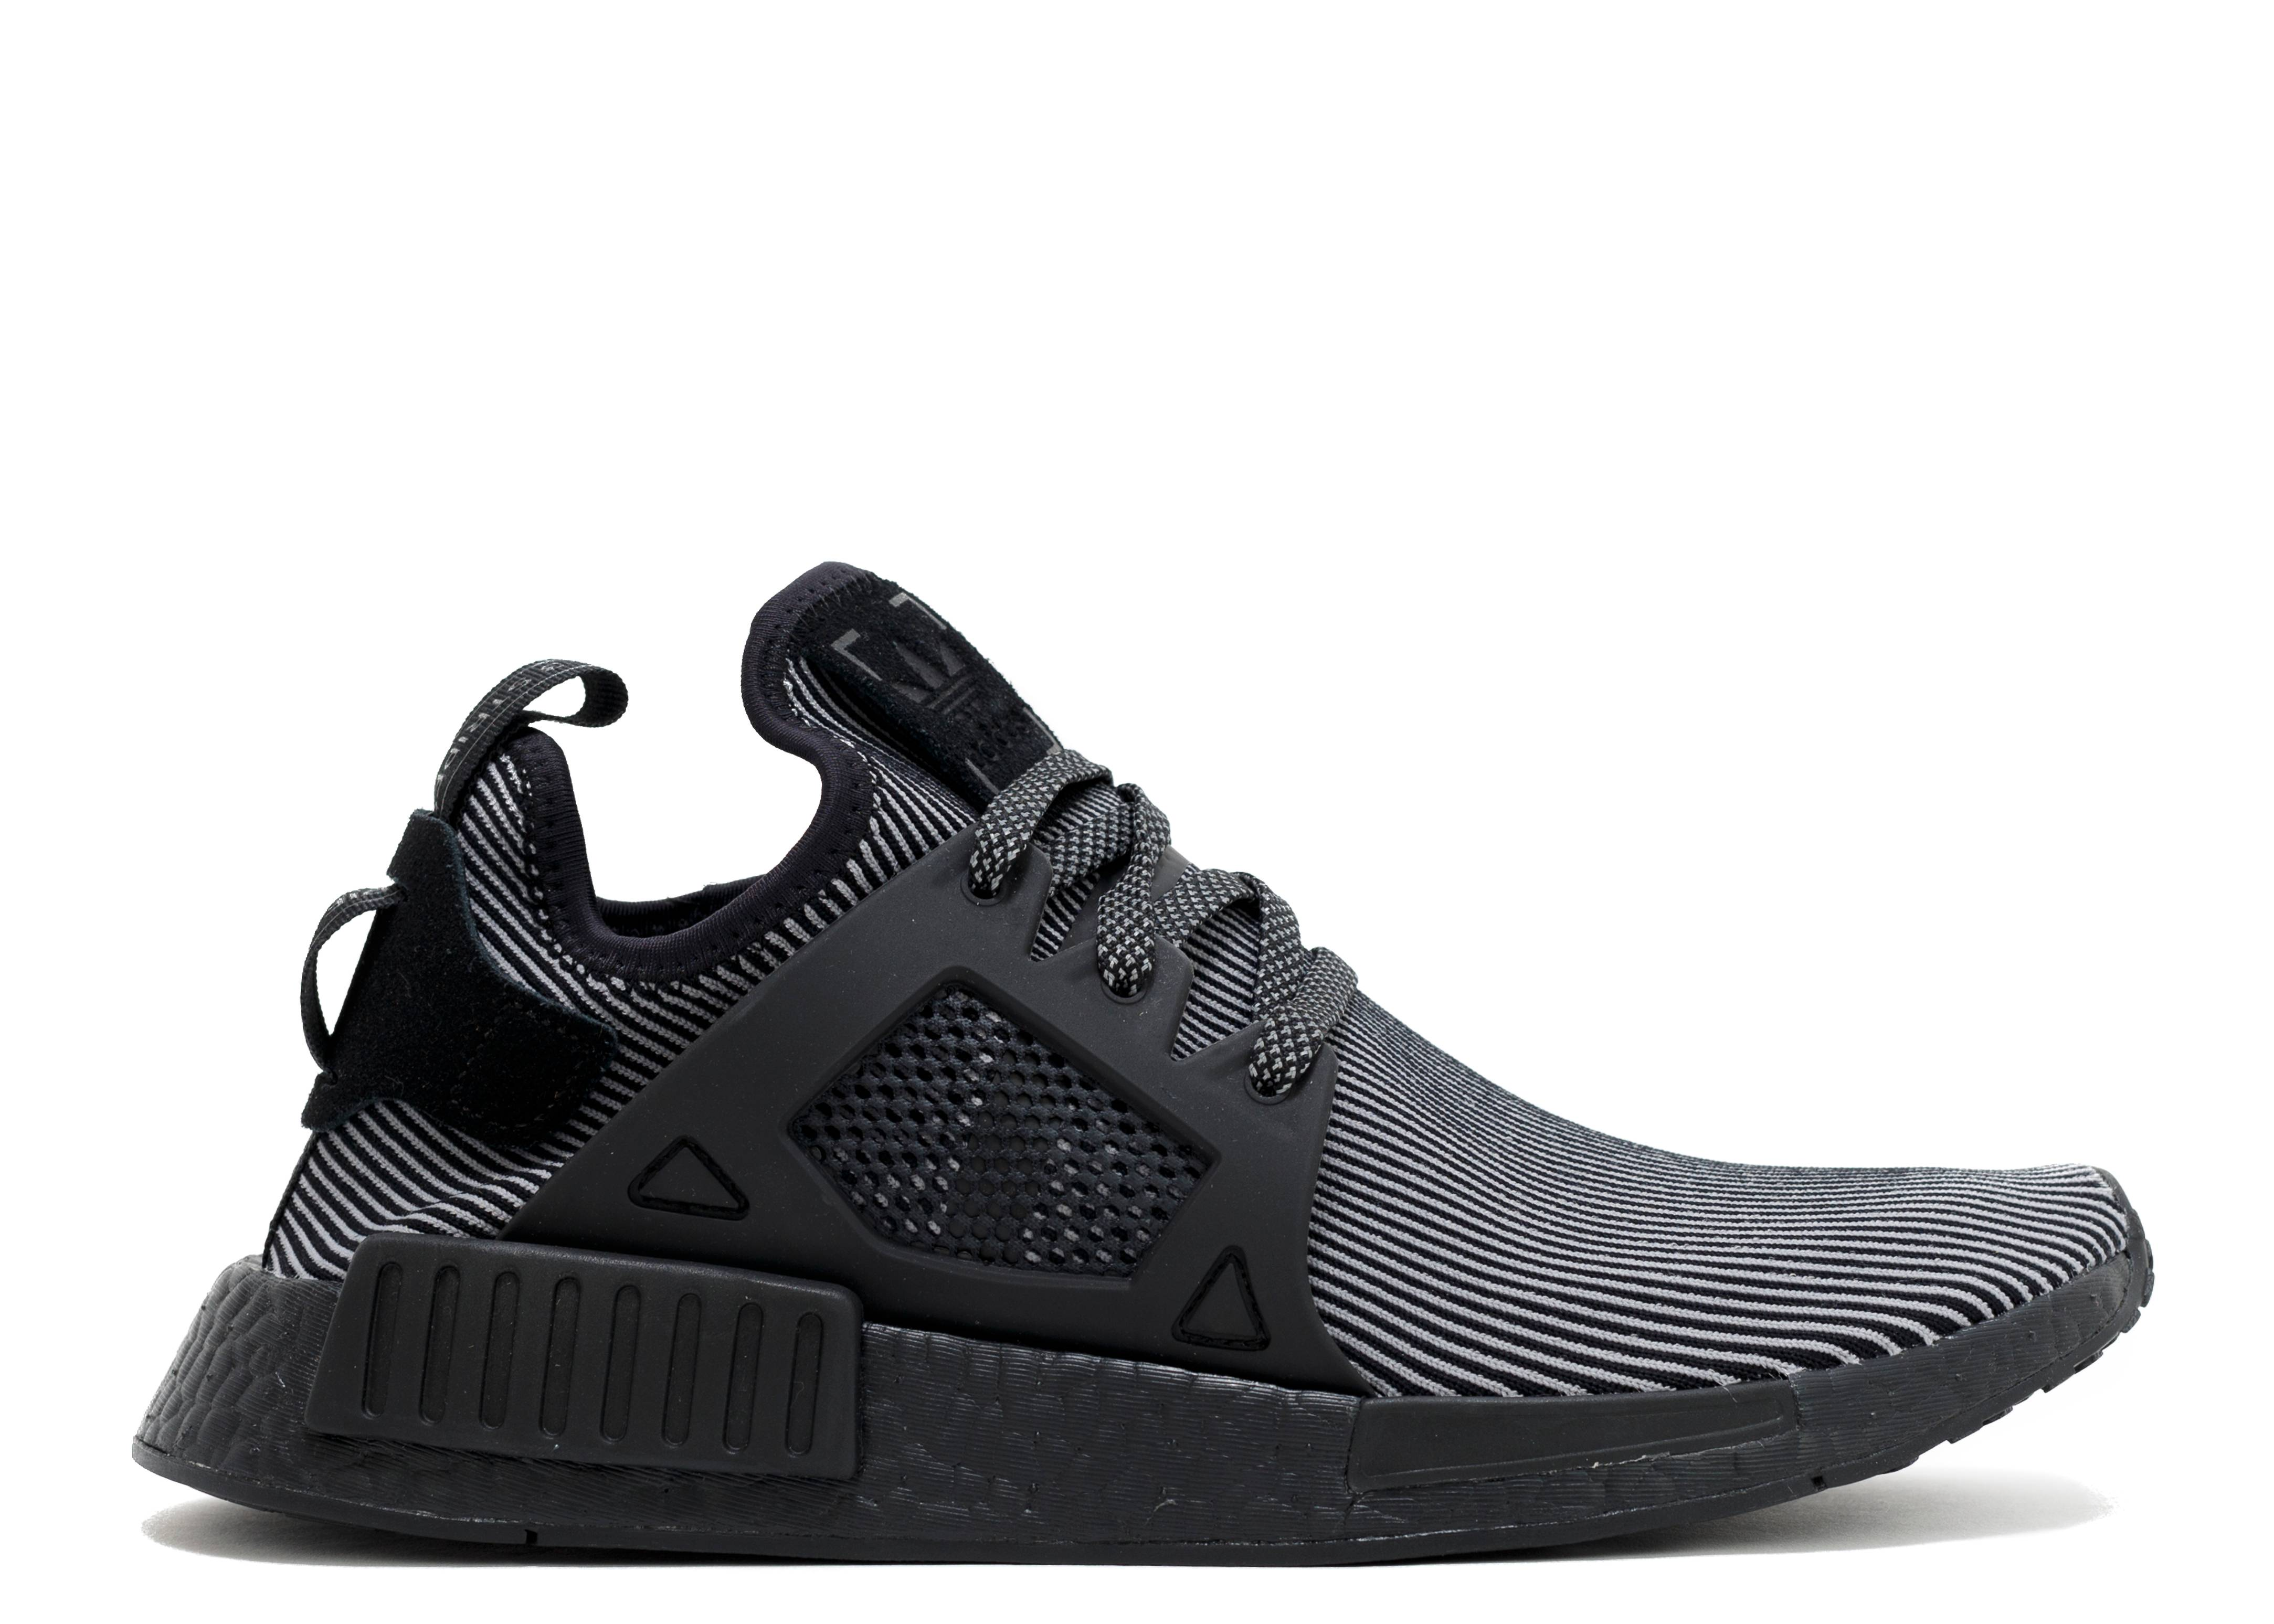 adidas Originals NMD Xr1 PK Primeknit Core Black Silver Men Shoes